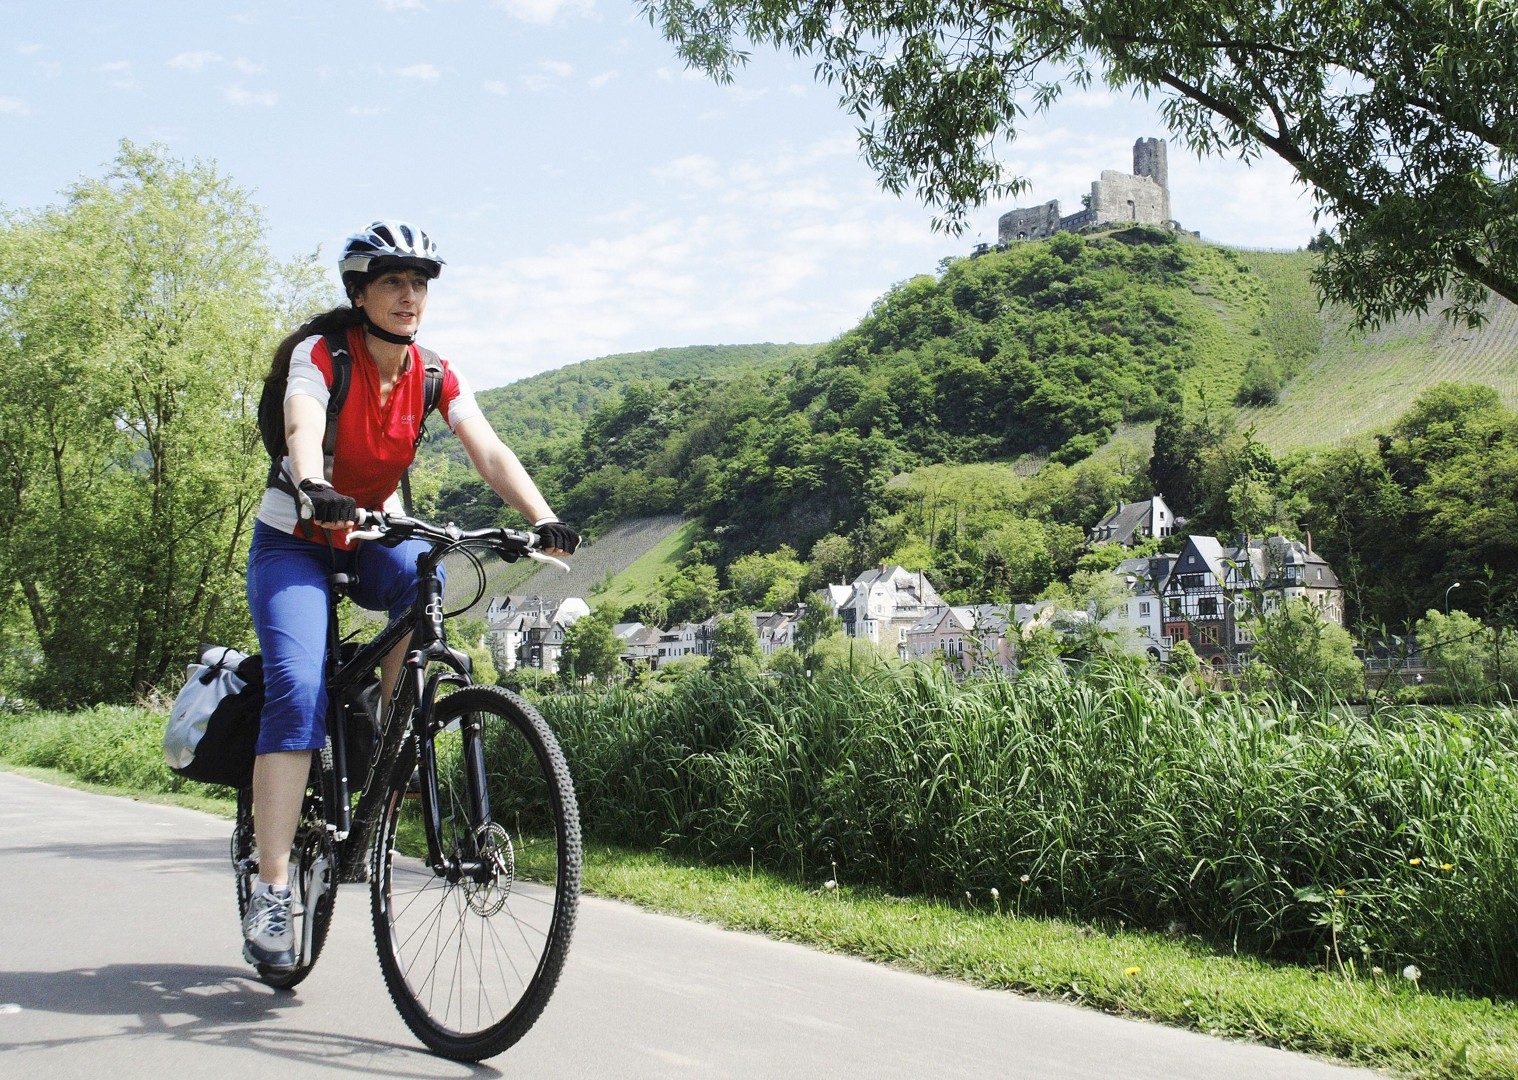 moselle-river-moselle-valley-germany-leisure-cycling-holiday.jpg - Germany - Moselle Valley - Leisure Cycling